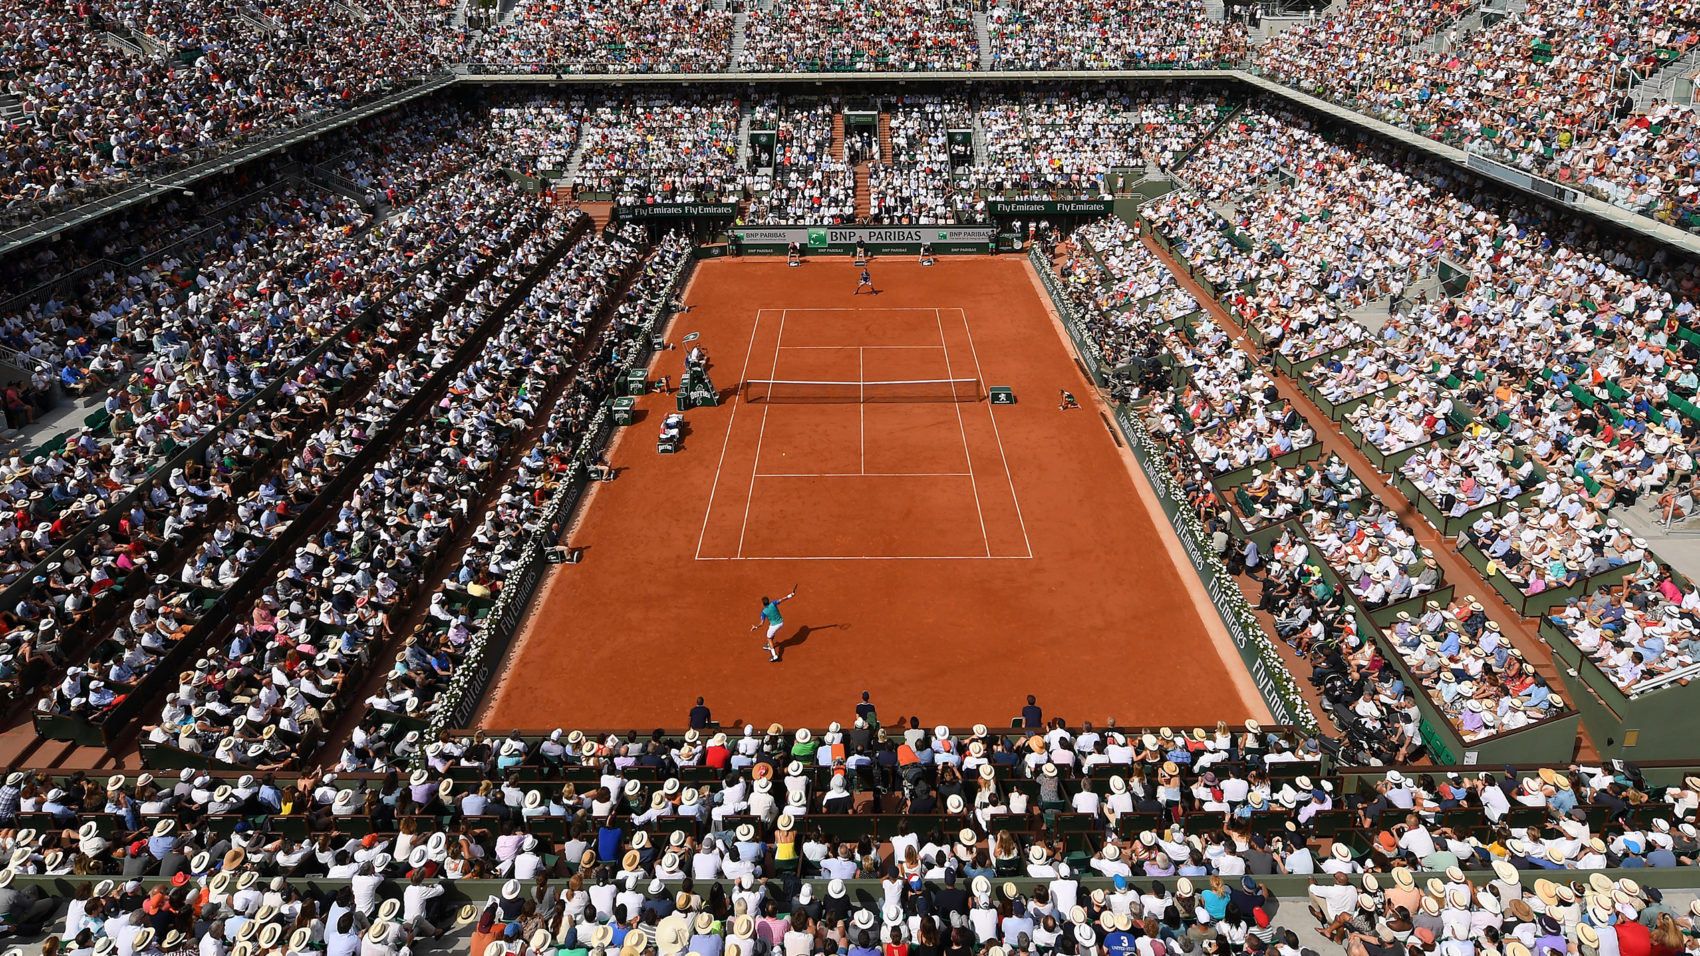 Projet_project_realisation_FFT_federation_francaise_french_tennis_roland_garros_2